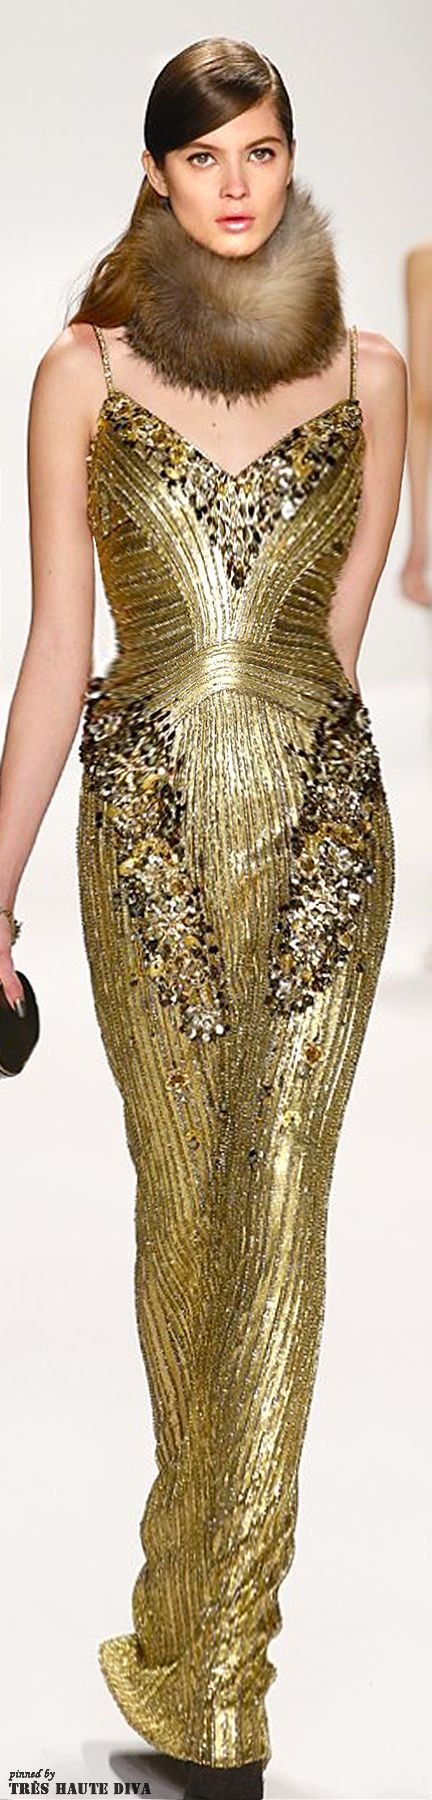 White and Gold Wedding. Gold Bridesmaid Dress. Elegant and Glamorous. #NYFW Badgley Mischka Fall/Winter 2014 RTW